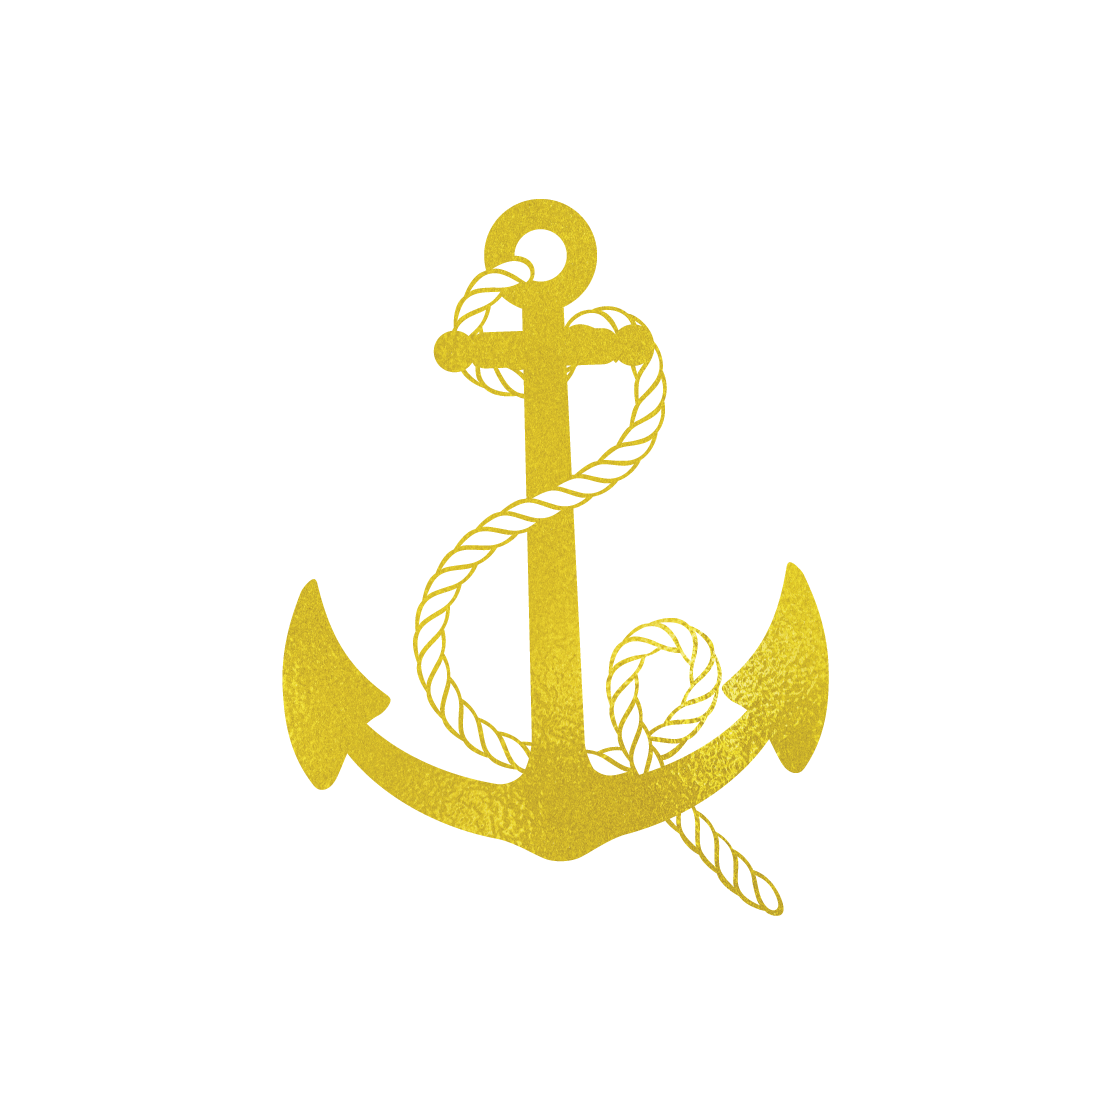 Metalic Gold Anchor Tattoo